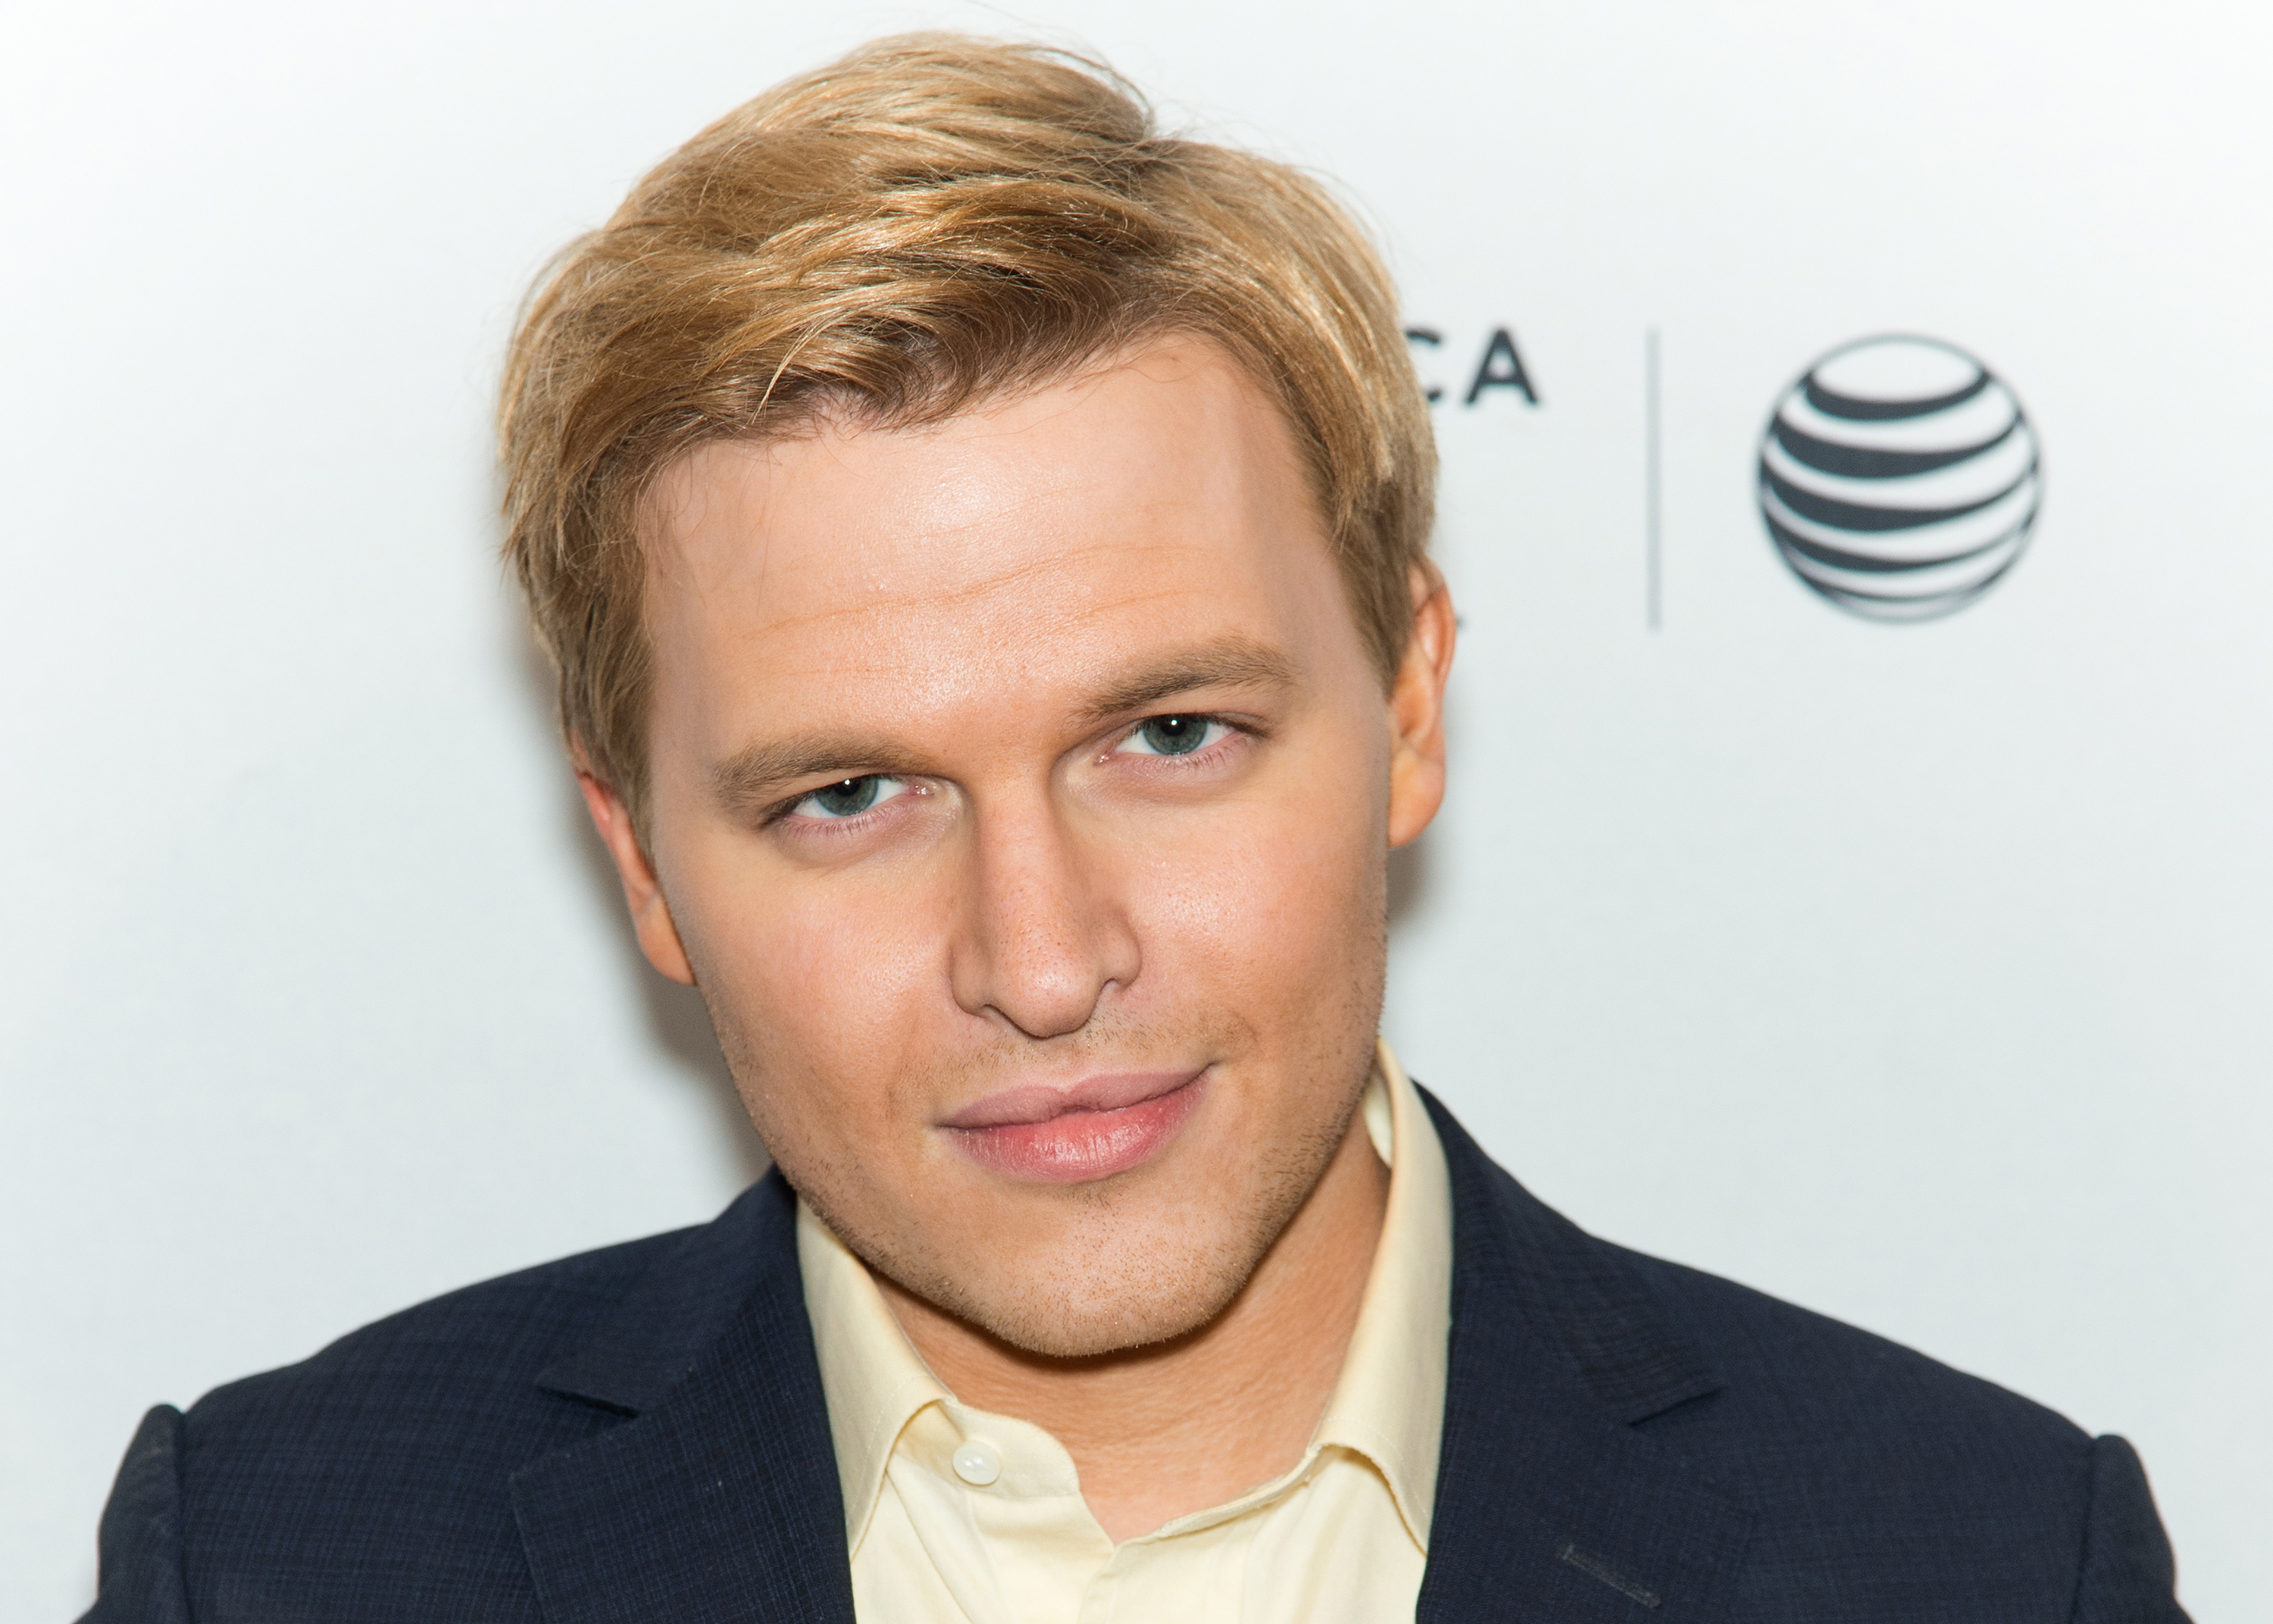 Activist Ronan Farrow attends the 2015 Tribeca Film Festival World Premiere Documentary: 'The Diplomat'  at SVA Theater 1 on April 23, 2015 in New York City.